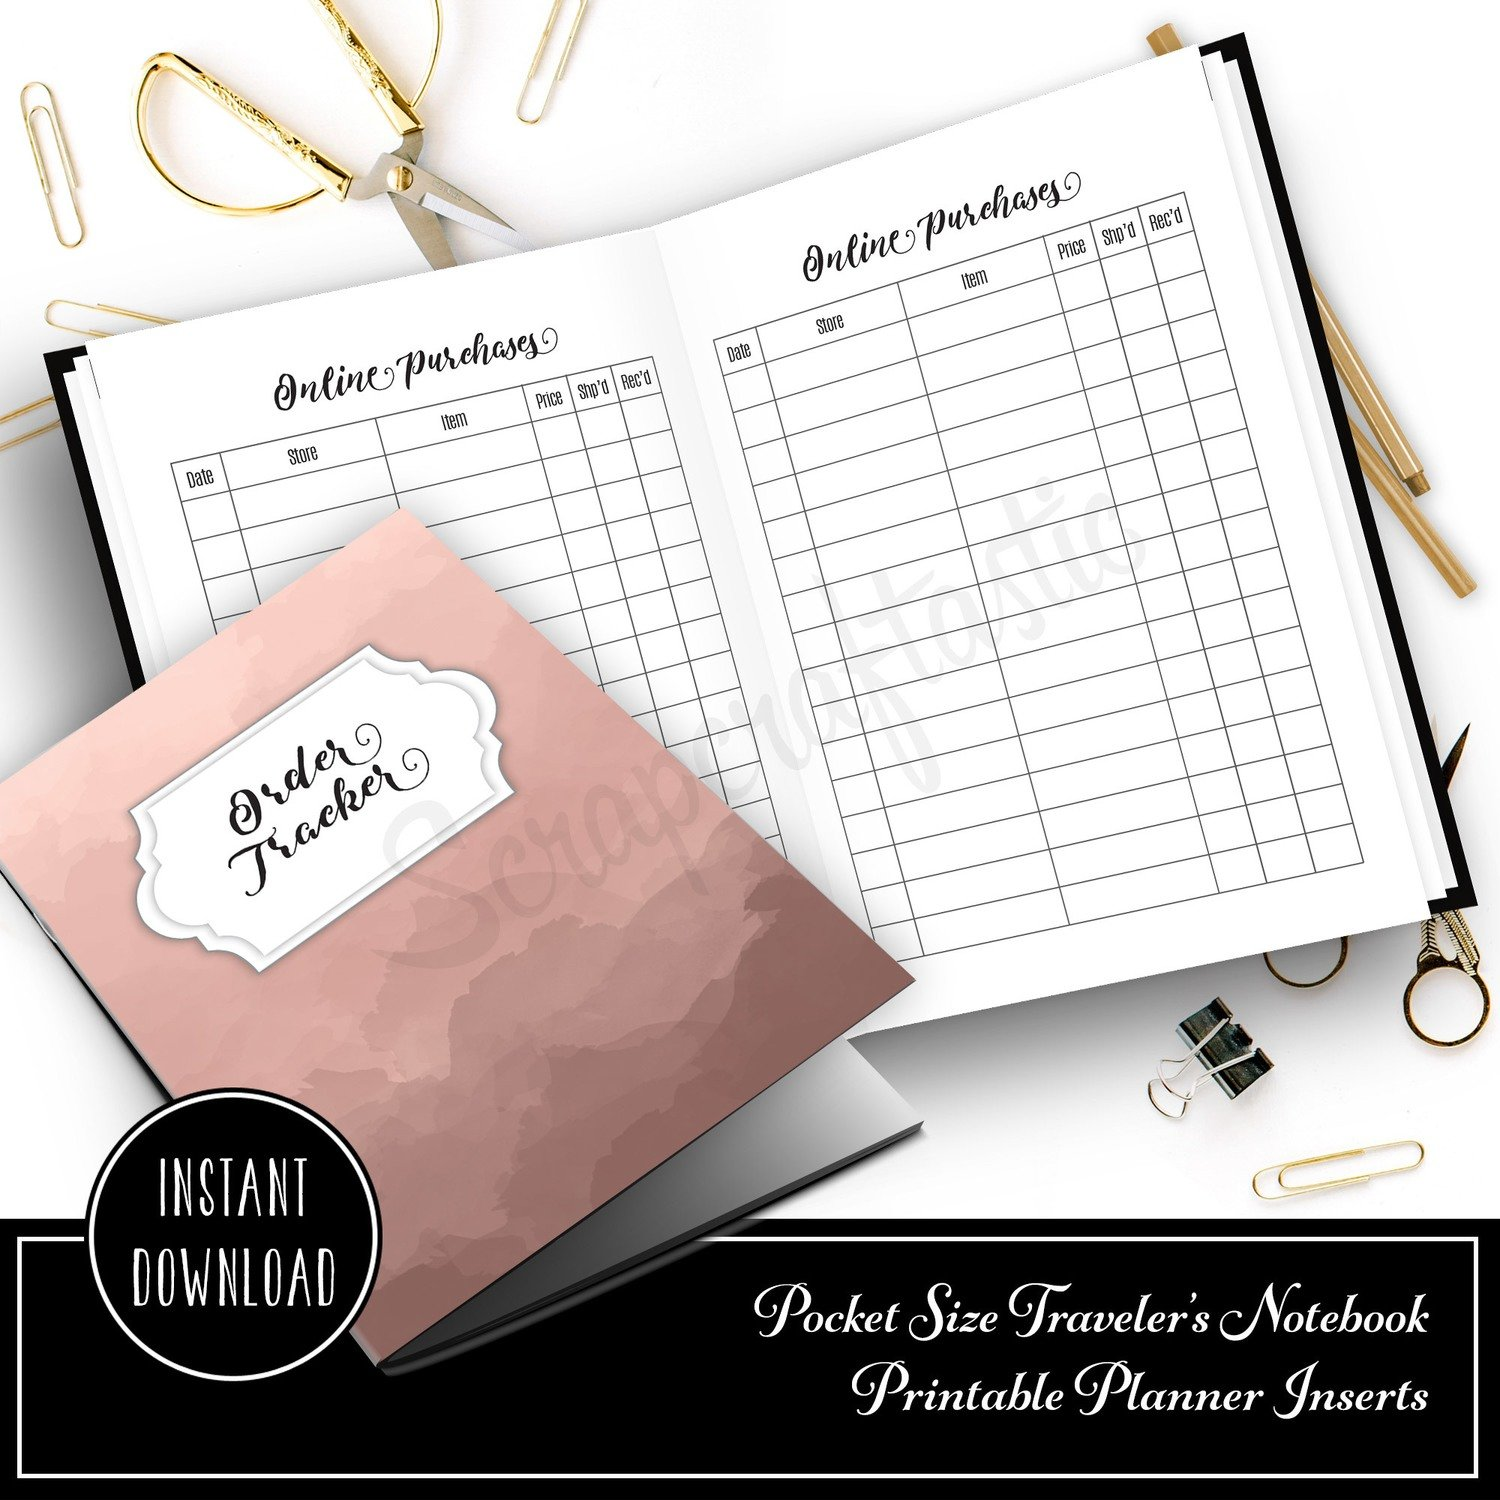 Online Purchase/Order Tracker Pocket Size Traveler's Notebook Printable Planner Inserts